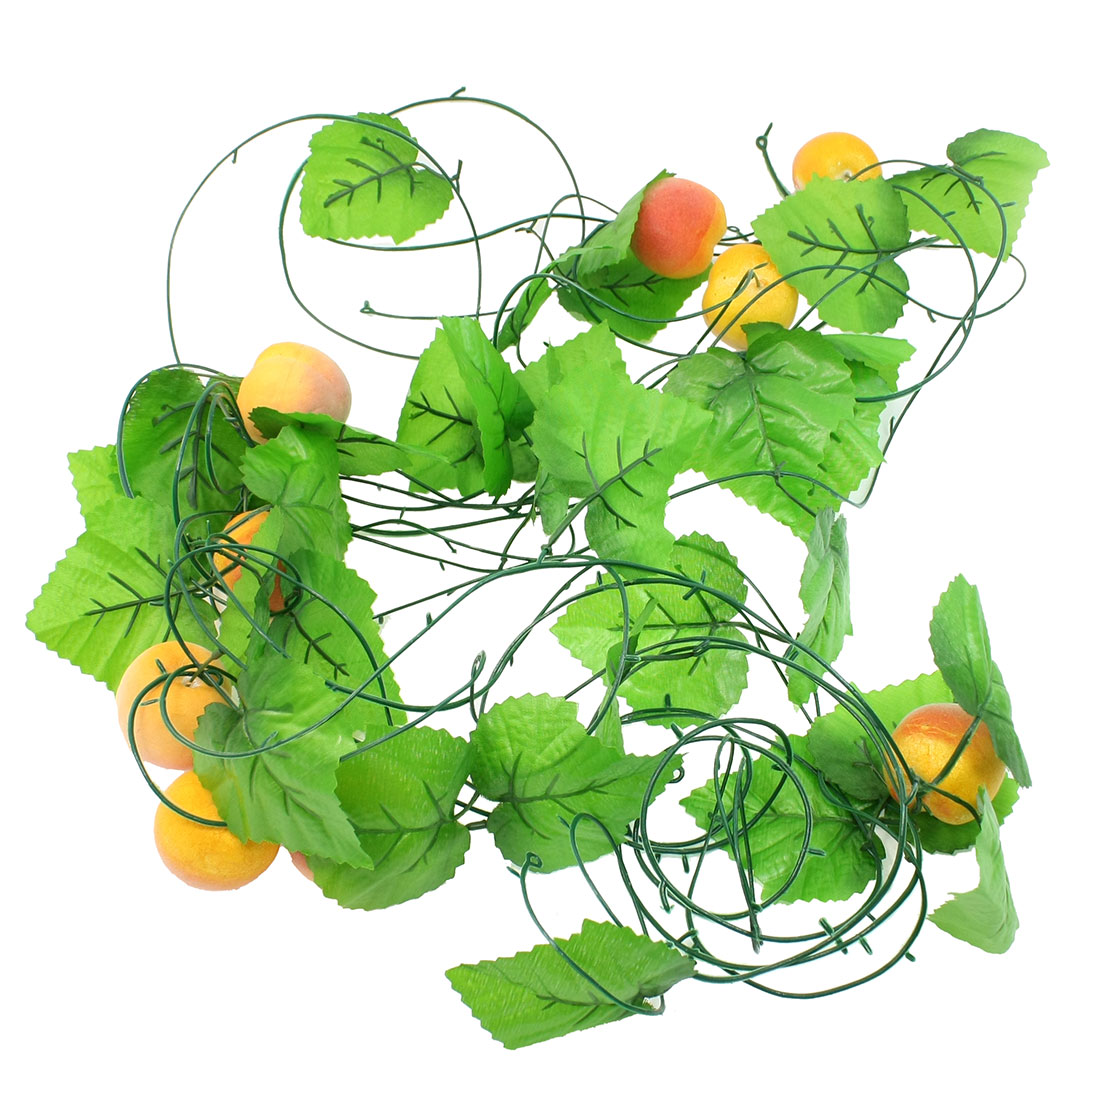 7.9Ft Length Emulational Green Leaf Peach Hanging Vine Decoration 5 Pcs